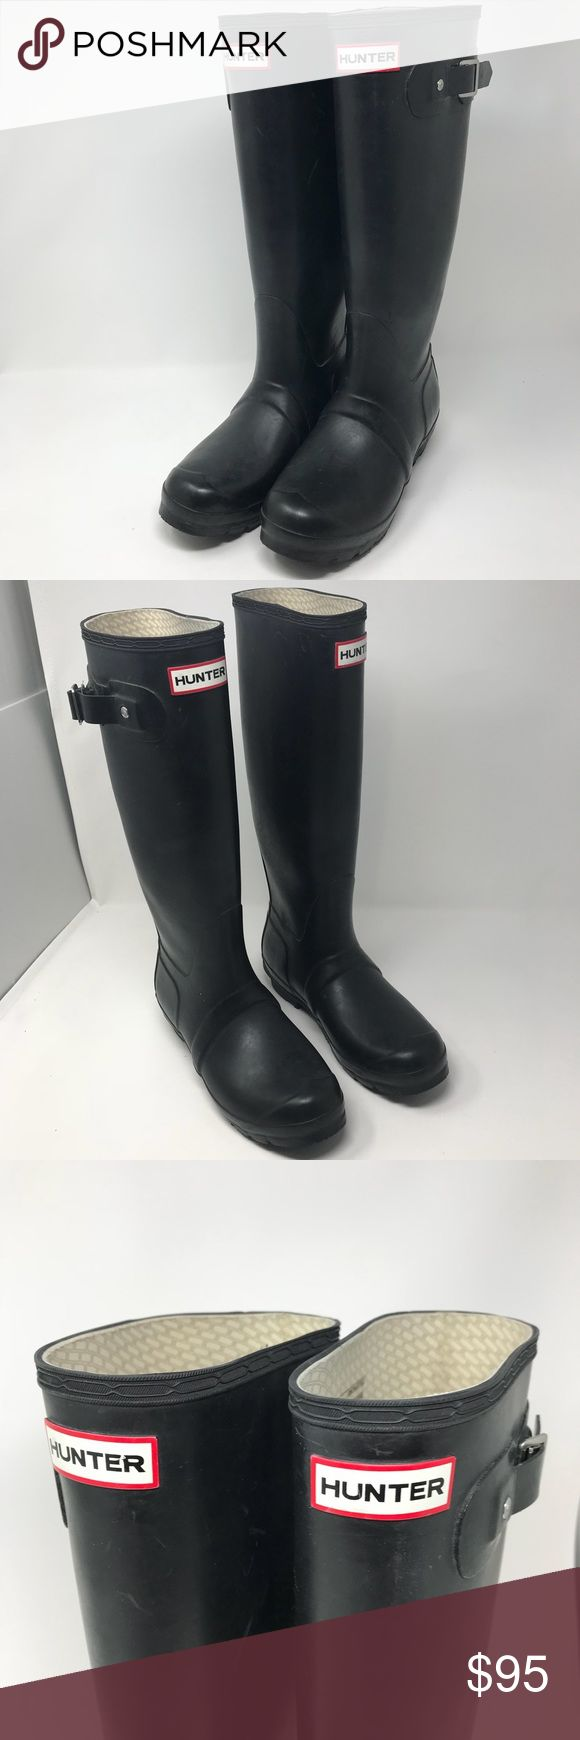 Hunter tall original rainboots Excellent used condition, tall black and beautiful!!! No holes or scrapes. Size F 6 / M 5 Hunter Shoes Winter & Rain Boots